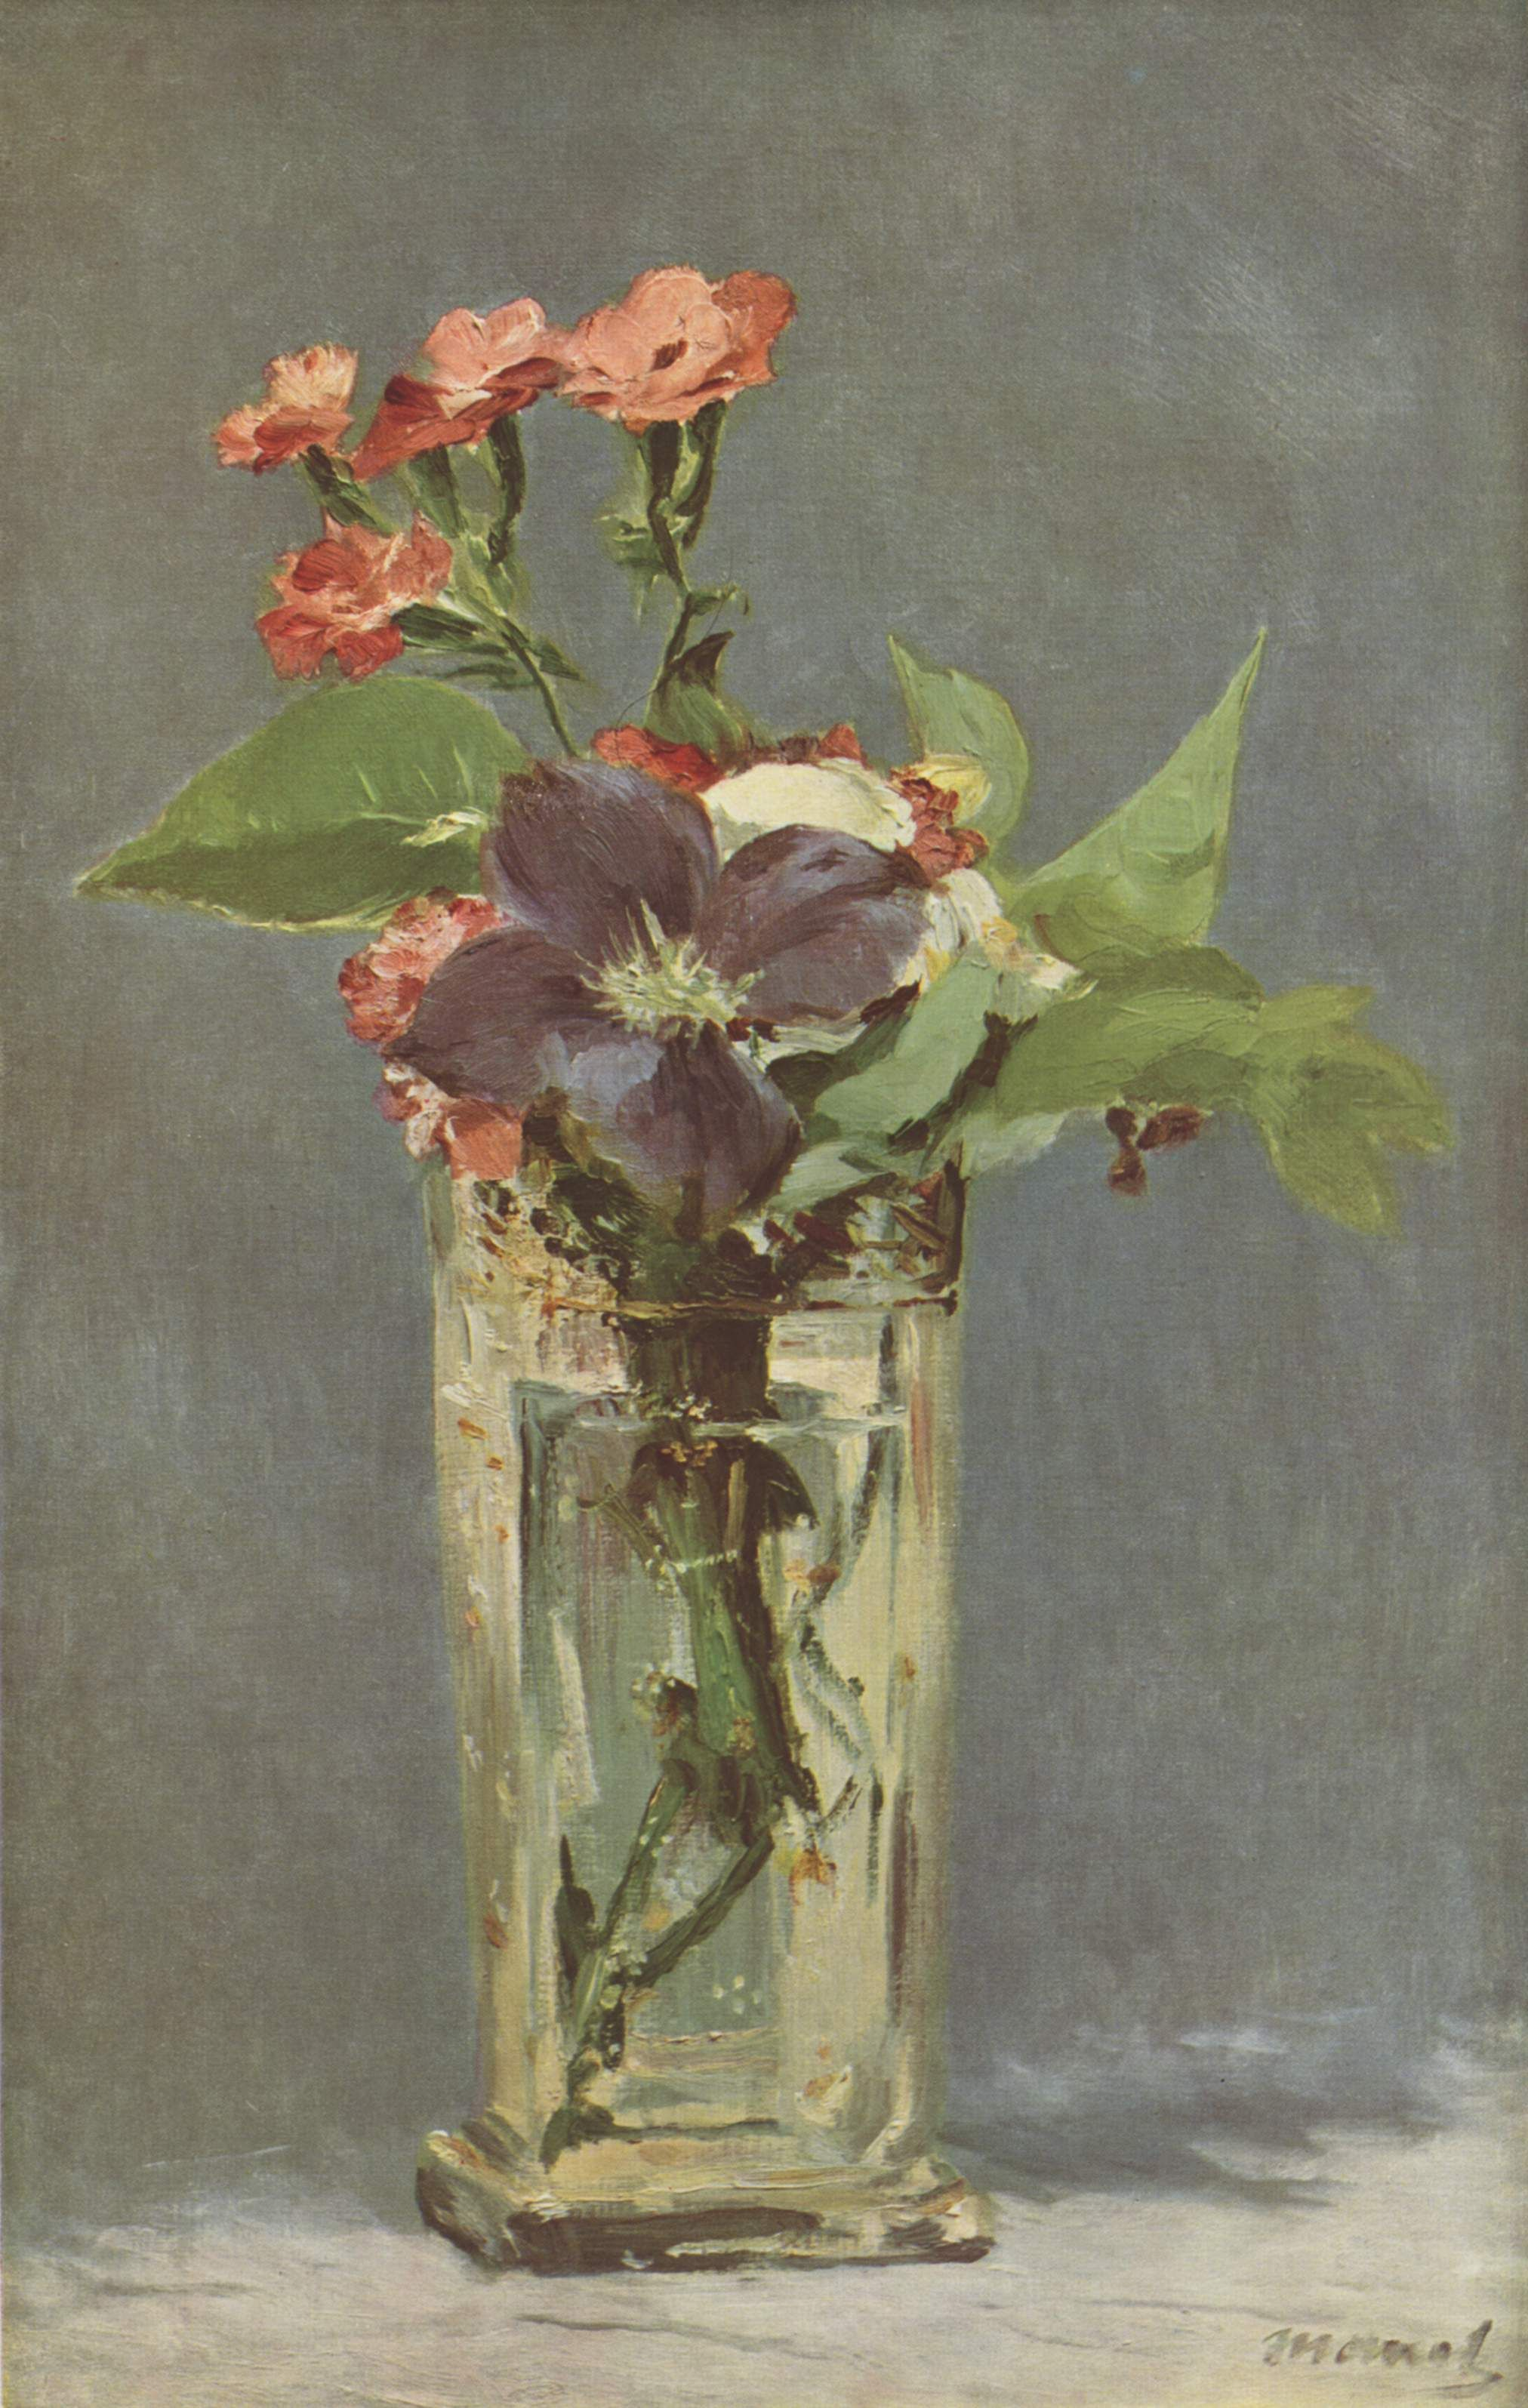 Edouard Manet Carnations And Clematis In A Crystal Vase 1883 Impressionism Art Fine Art Art Painting